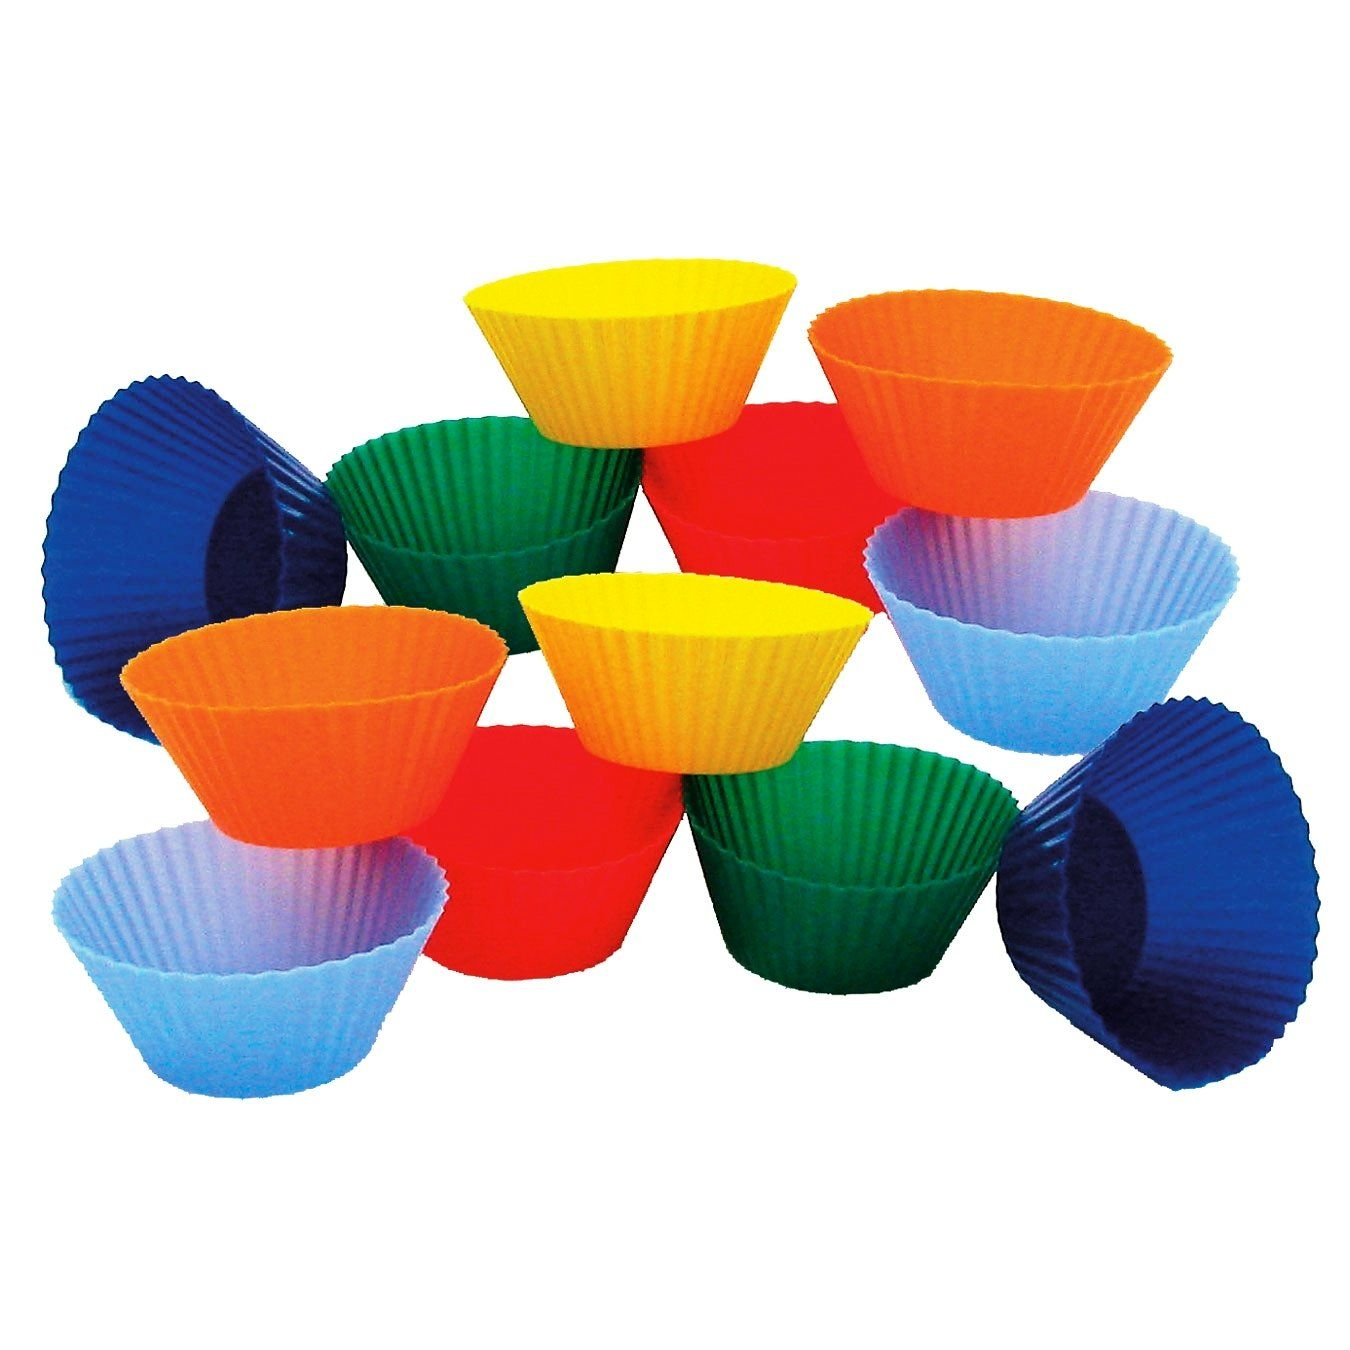 Kitchen Supply Mini Muffin Silicone Baking Cups 1 7 8 Inch Set